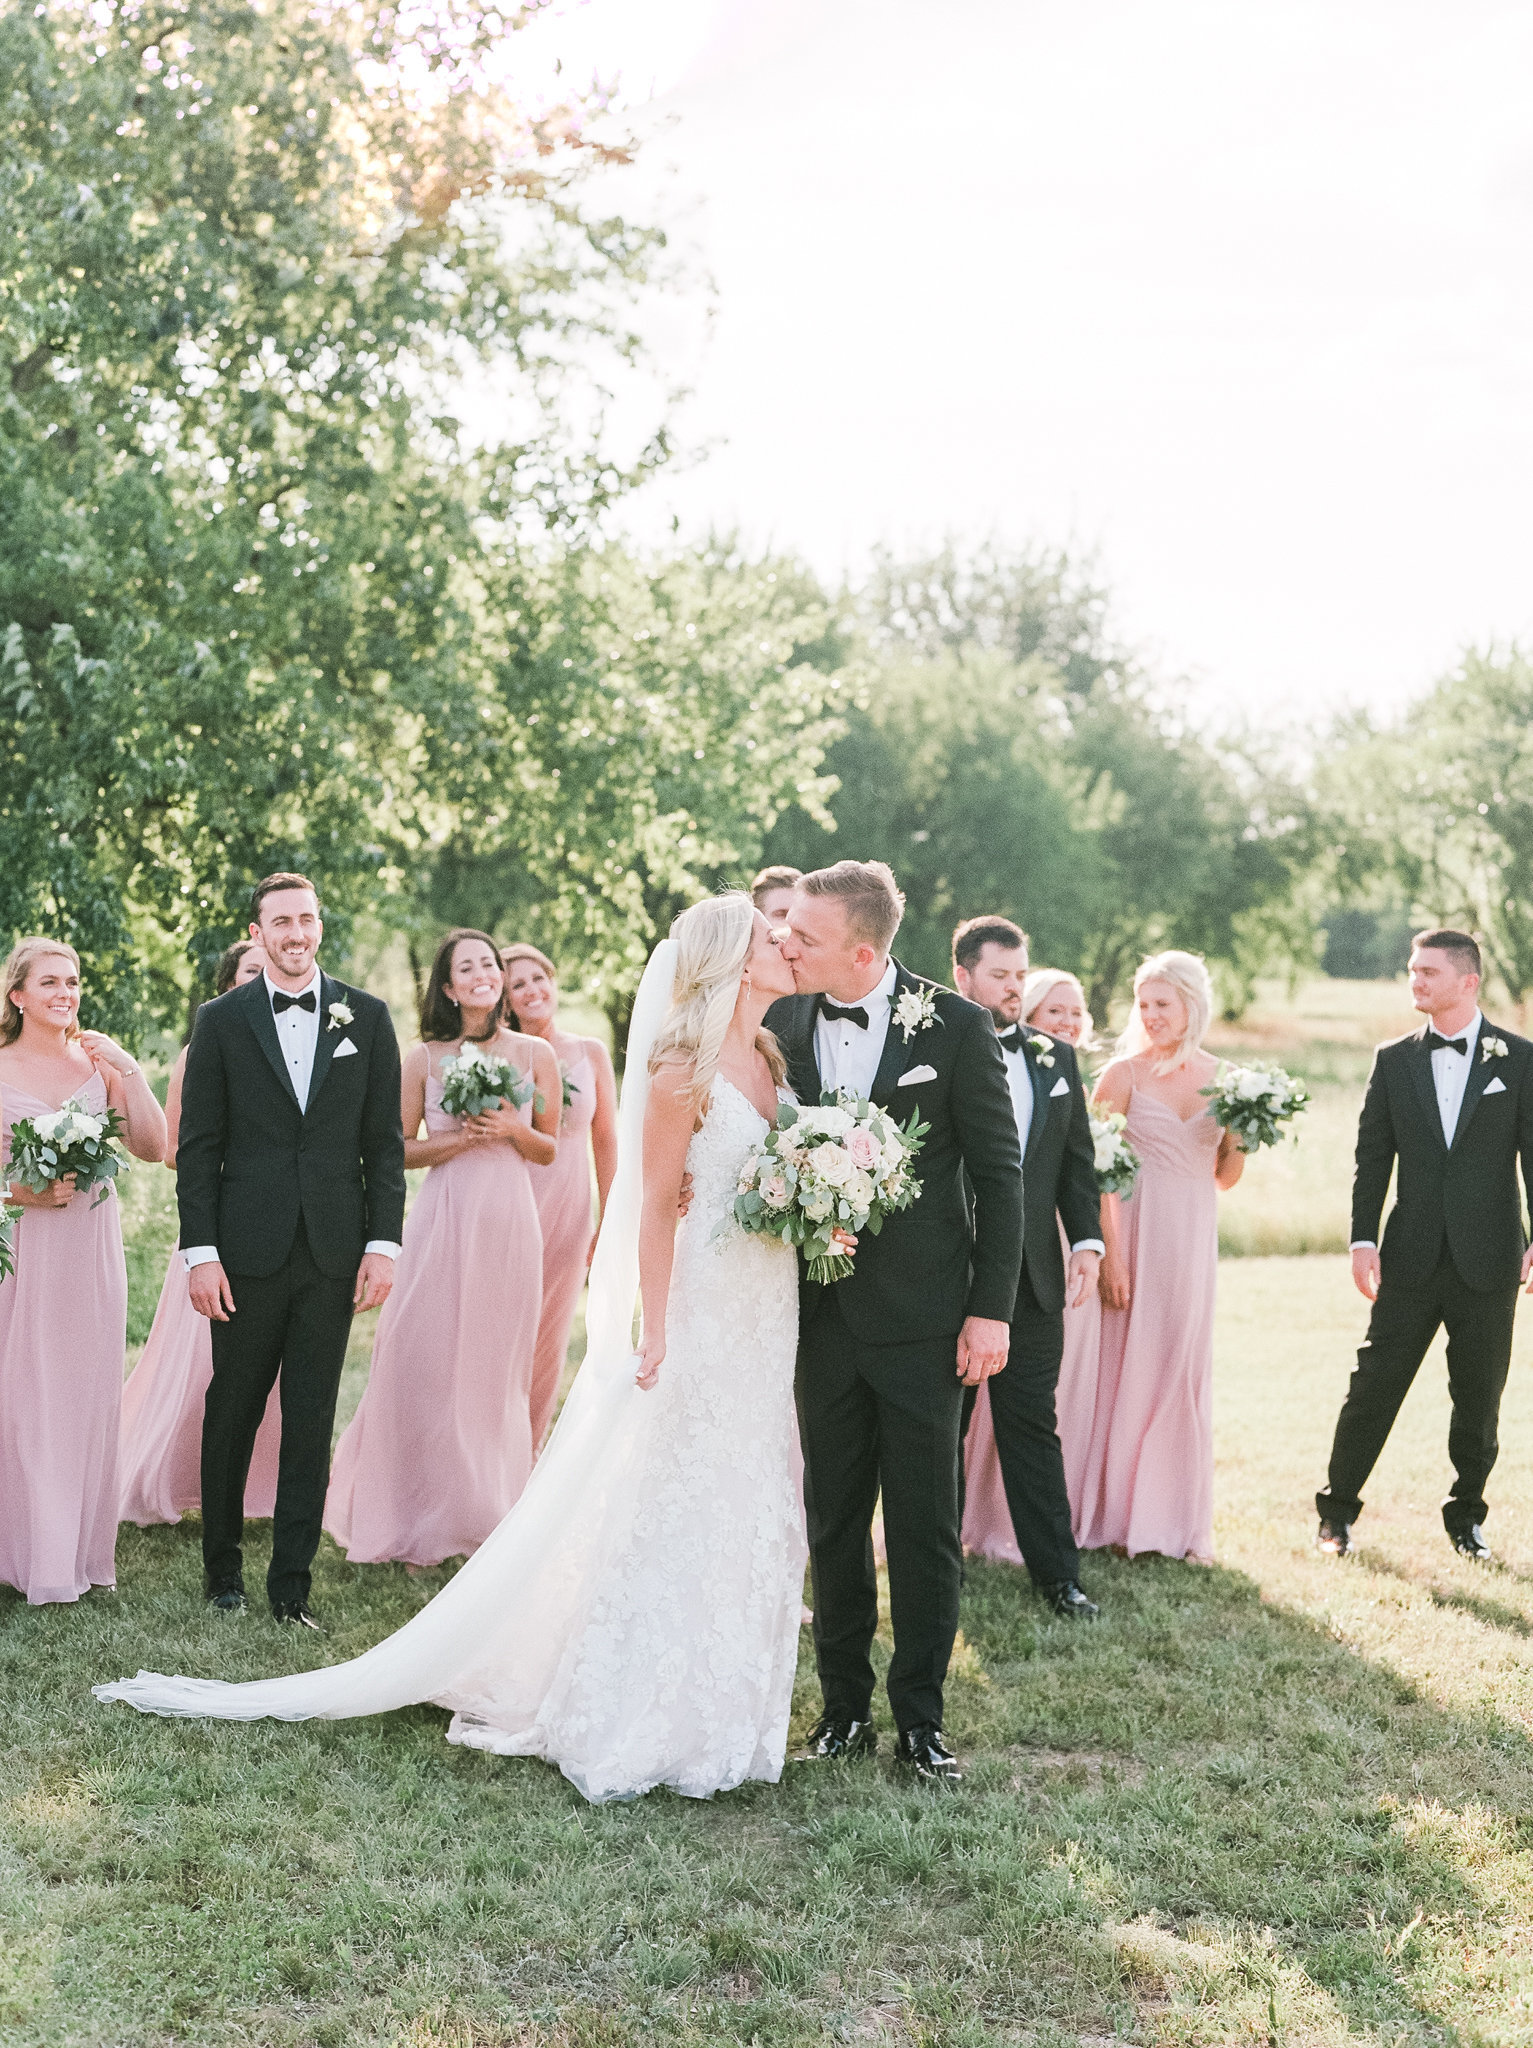 Katie & Nick Wedding at The Nest at Ruth Farms | Sami Kathryn Photography | DFW Dallas Wedding Photographer-87